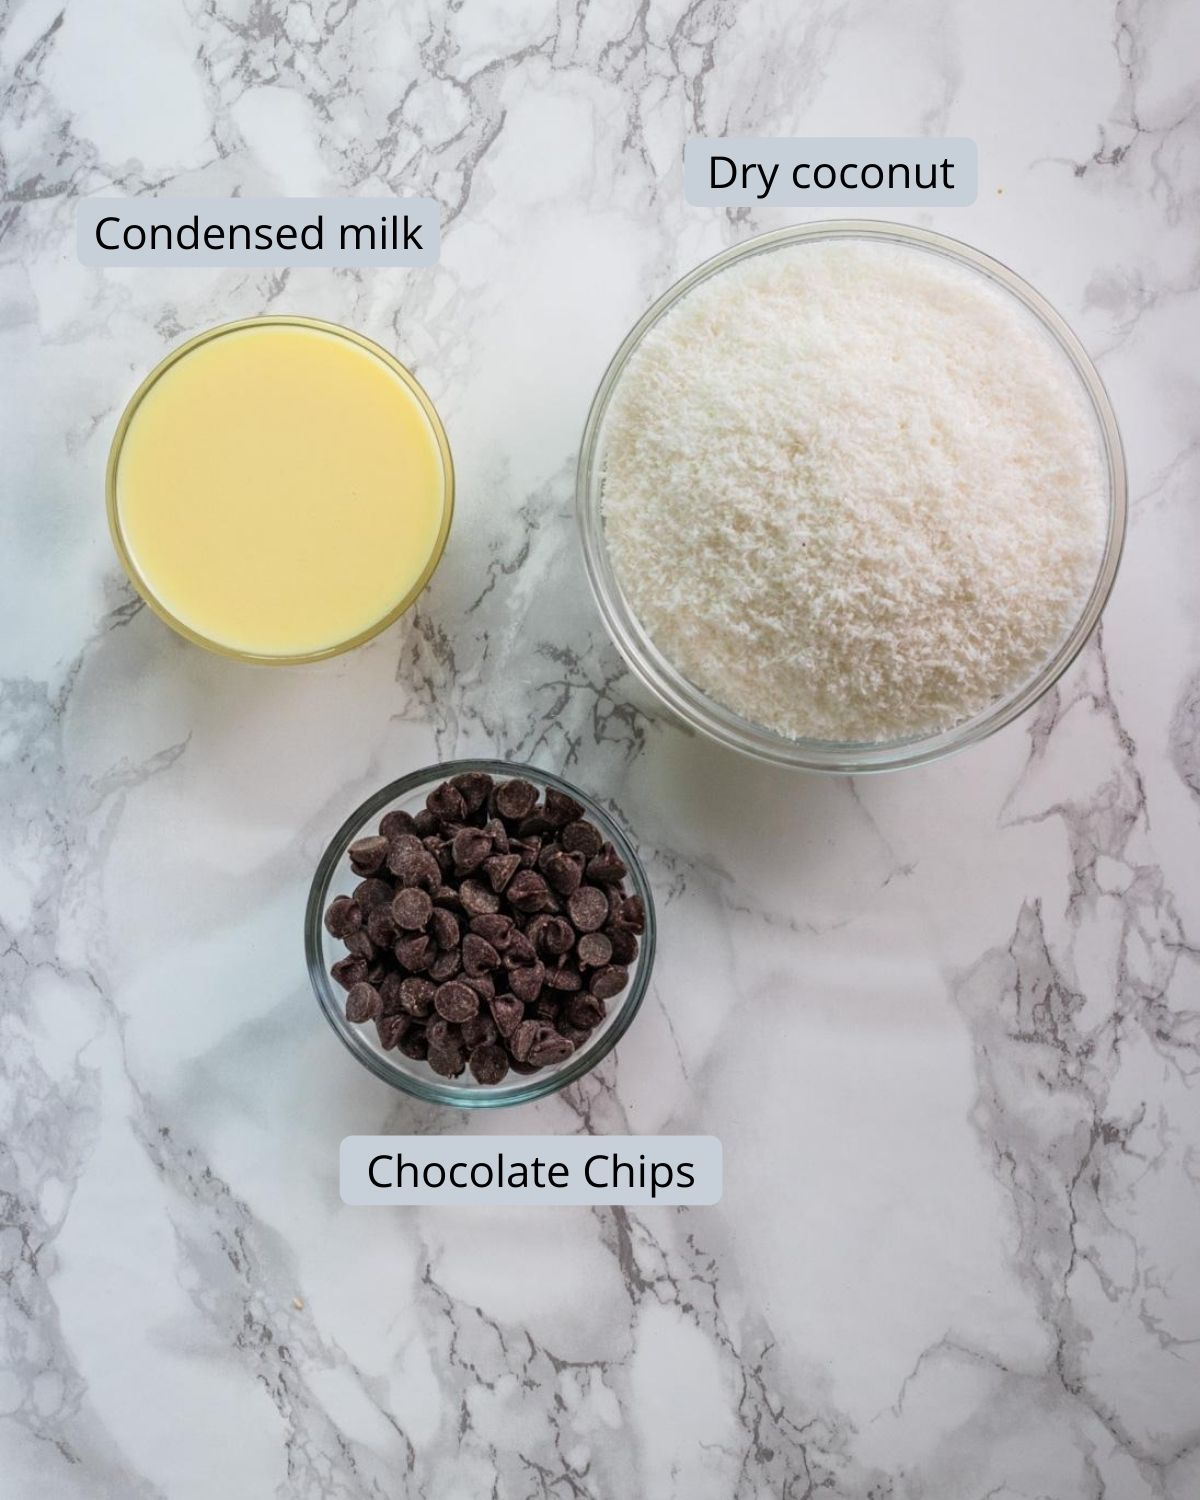 Image of ingredients used in coconut modak. Shows condensed milk, chocolate chips, coconut